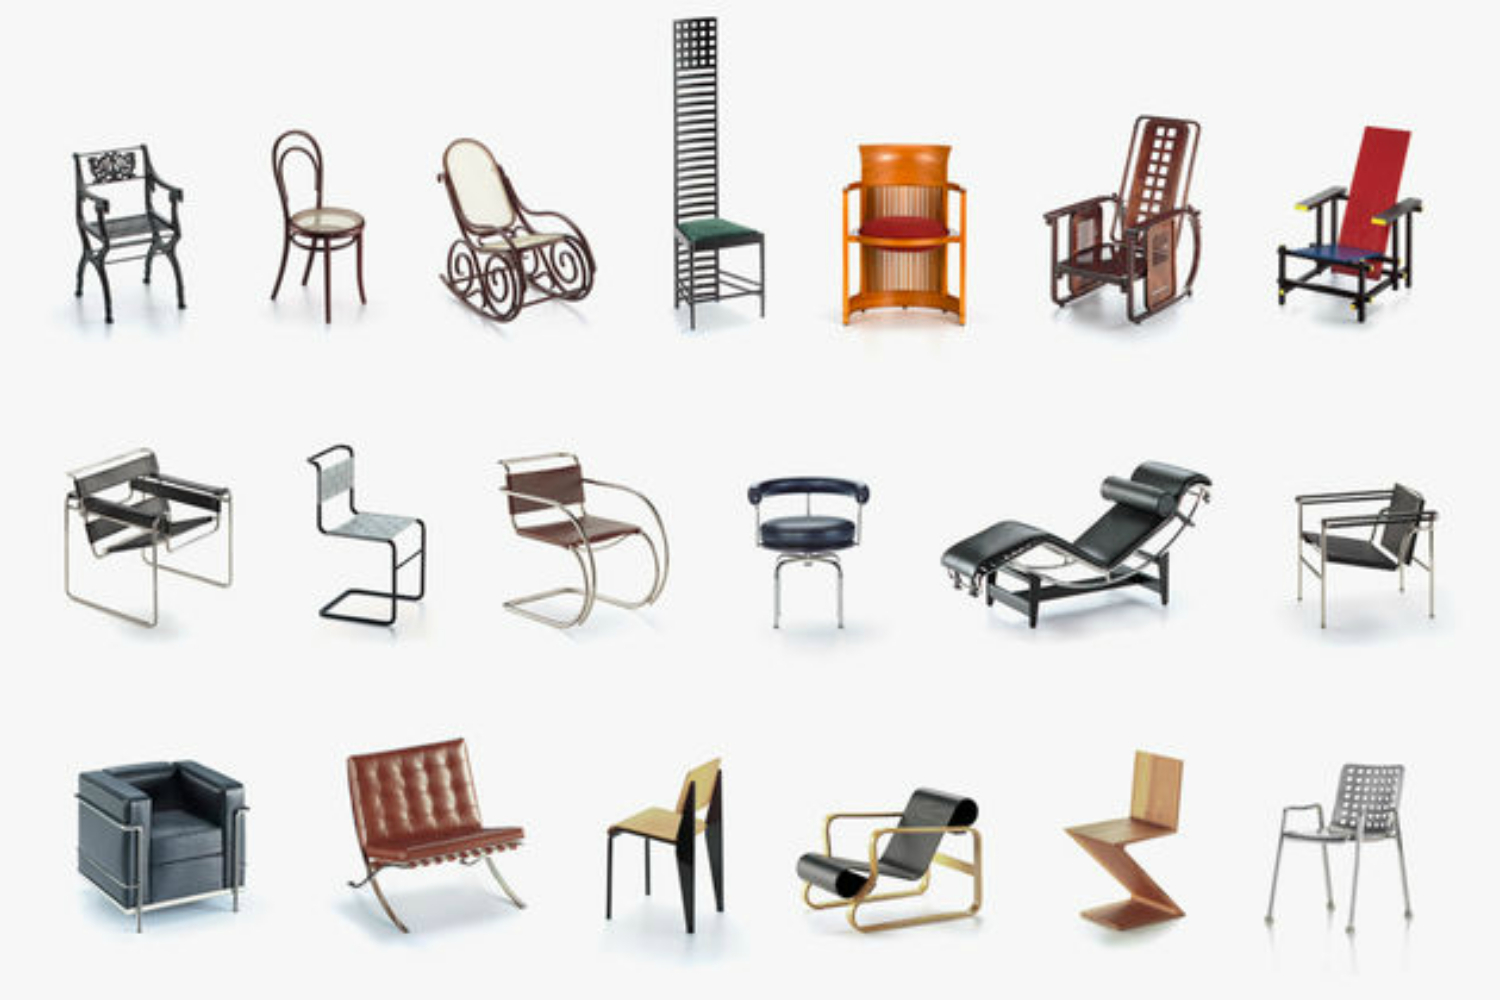 Chaise Design Miniature Miniatures Collection 1 By Vitra Design Museum For Vitra